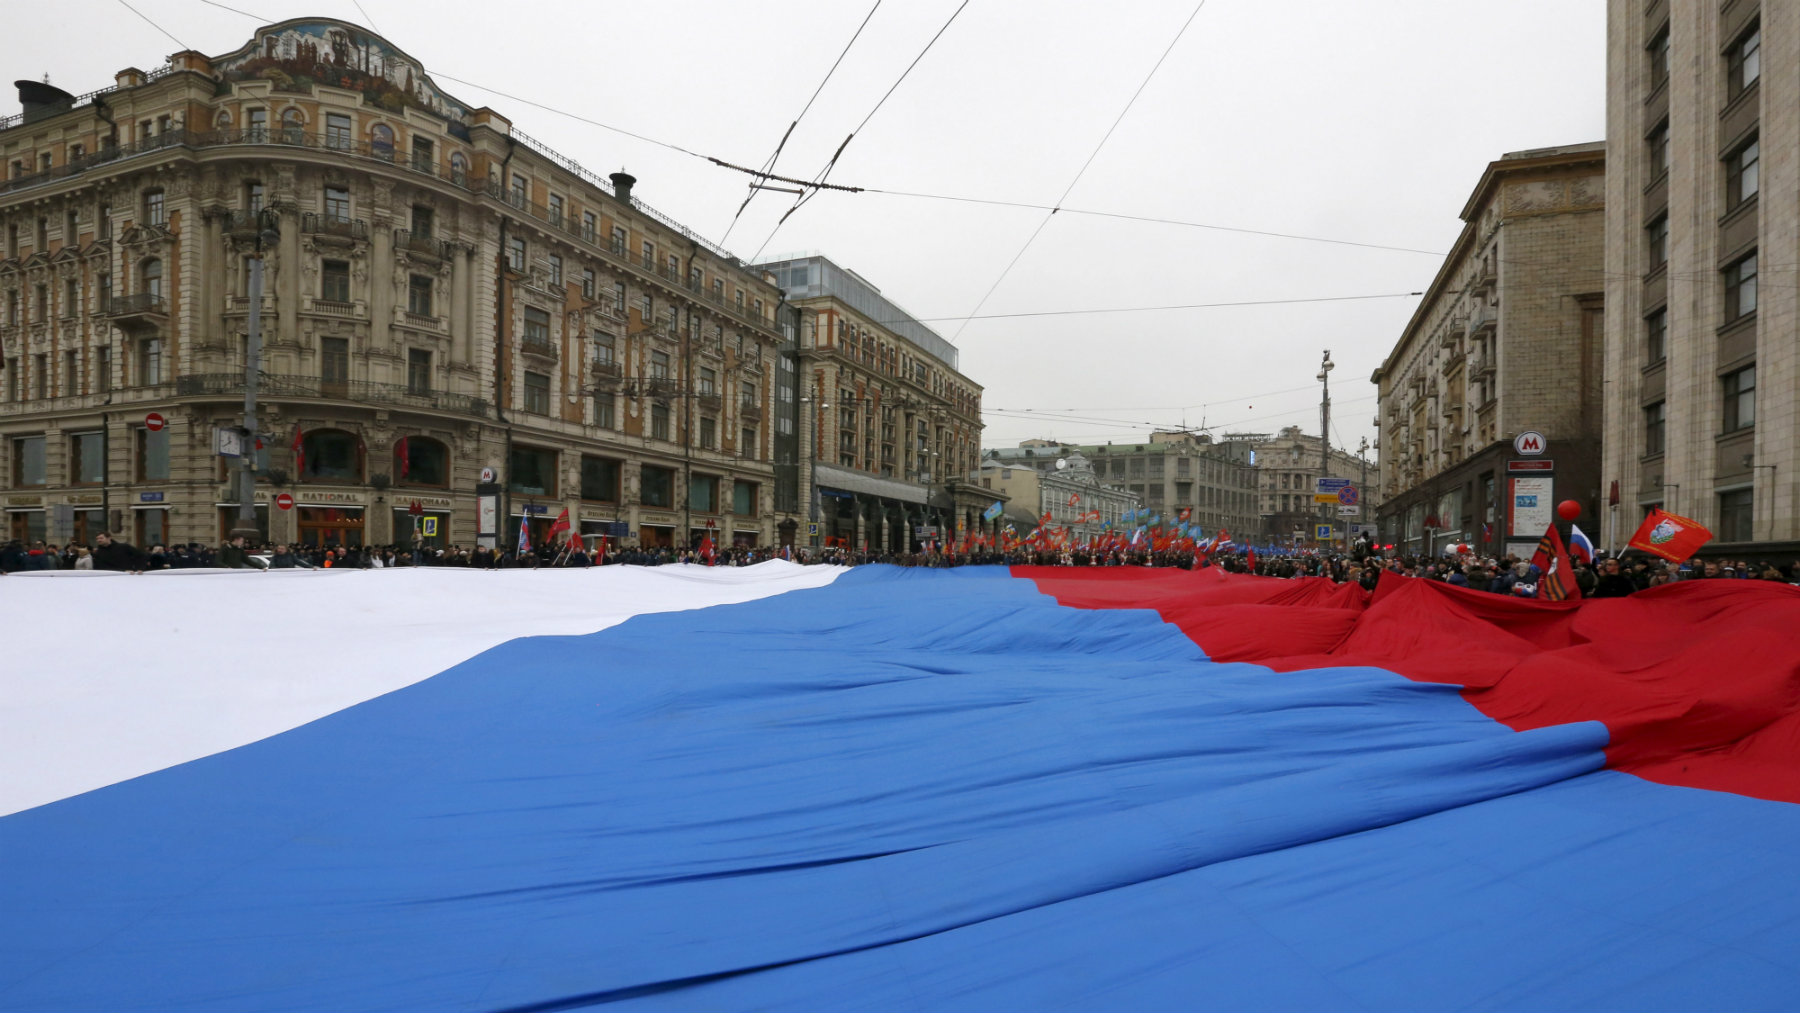 Participants march with a giant Russian national flag during a demonstration on National Unity Day in Moscow, Russia November 4, 2015. Russia marks National Unity Day on November 4 to celebrate the defeat of Polish invaders in 1612. According to the participants, they were demonstrating to demand for greater rights for all Russians. REUTERS/Sergei Karpukhin